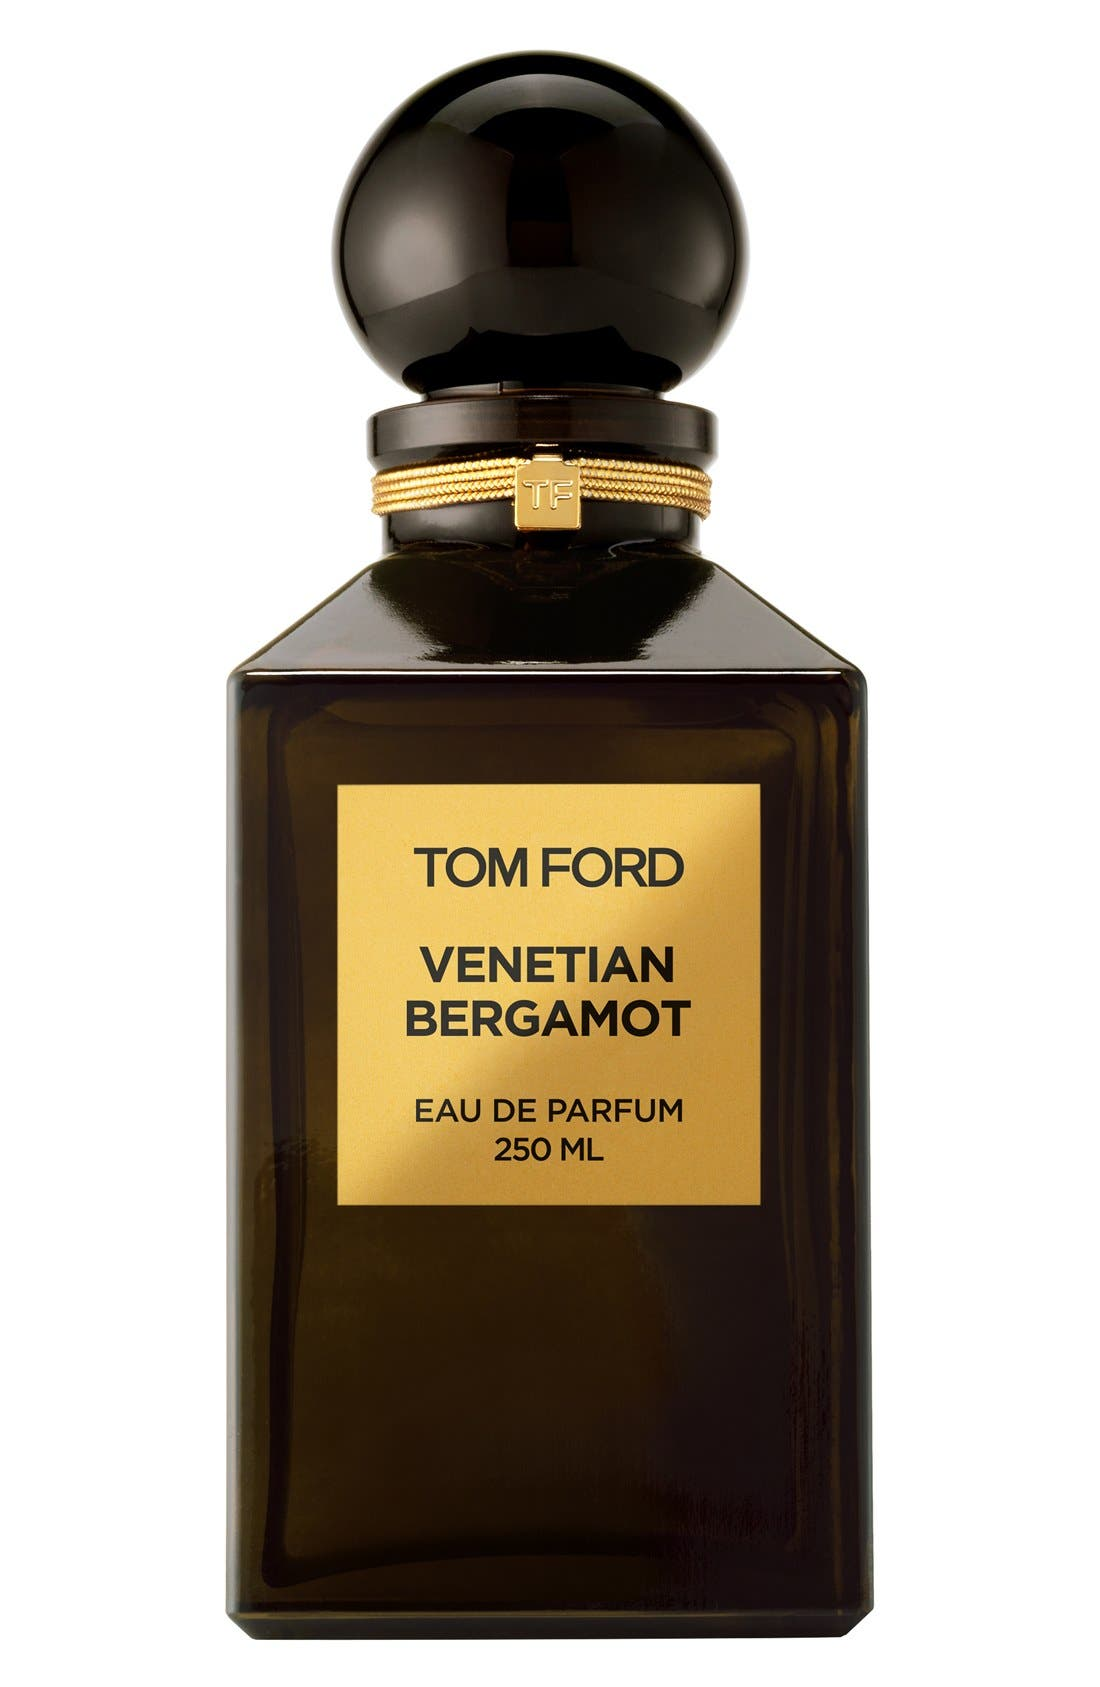 Tom Ford Private Blend Venetian Bergamot Eau de Parfum Decanter